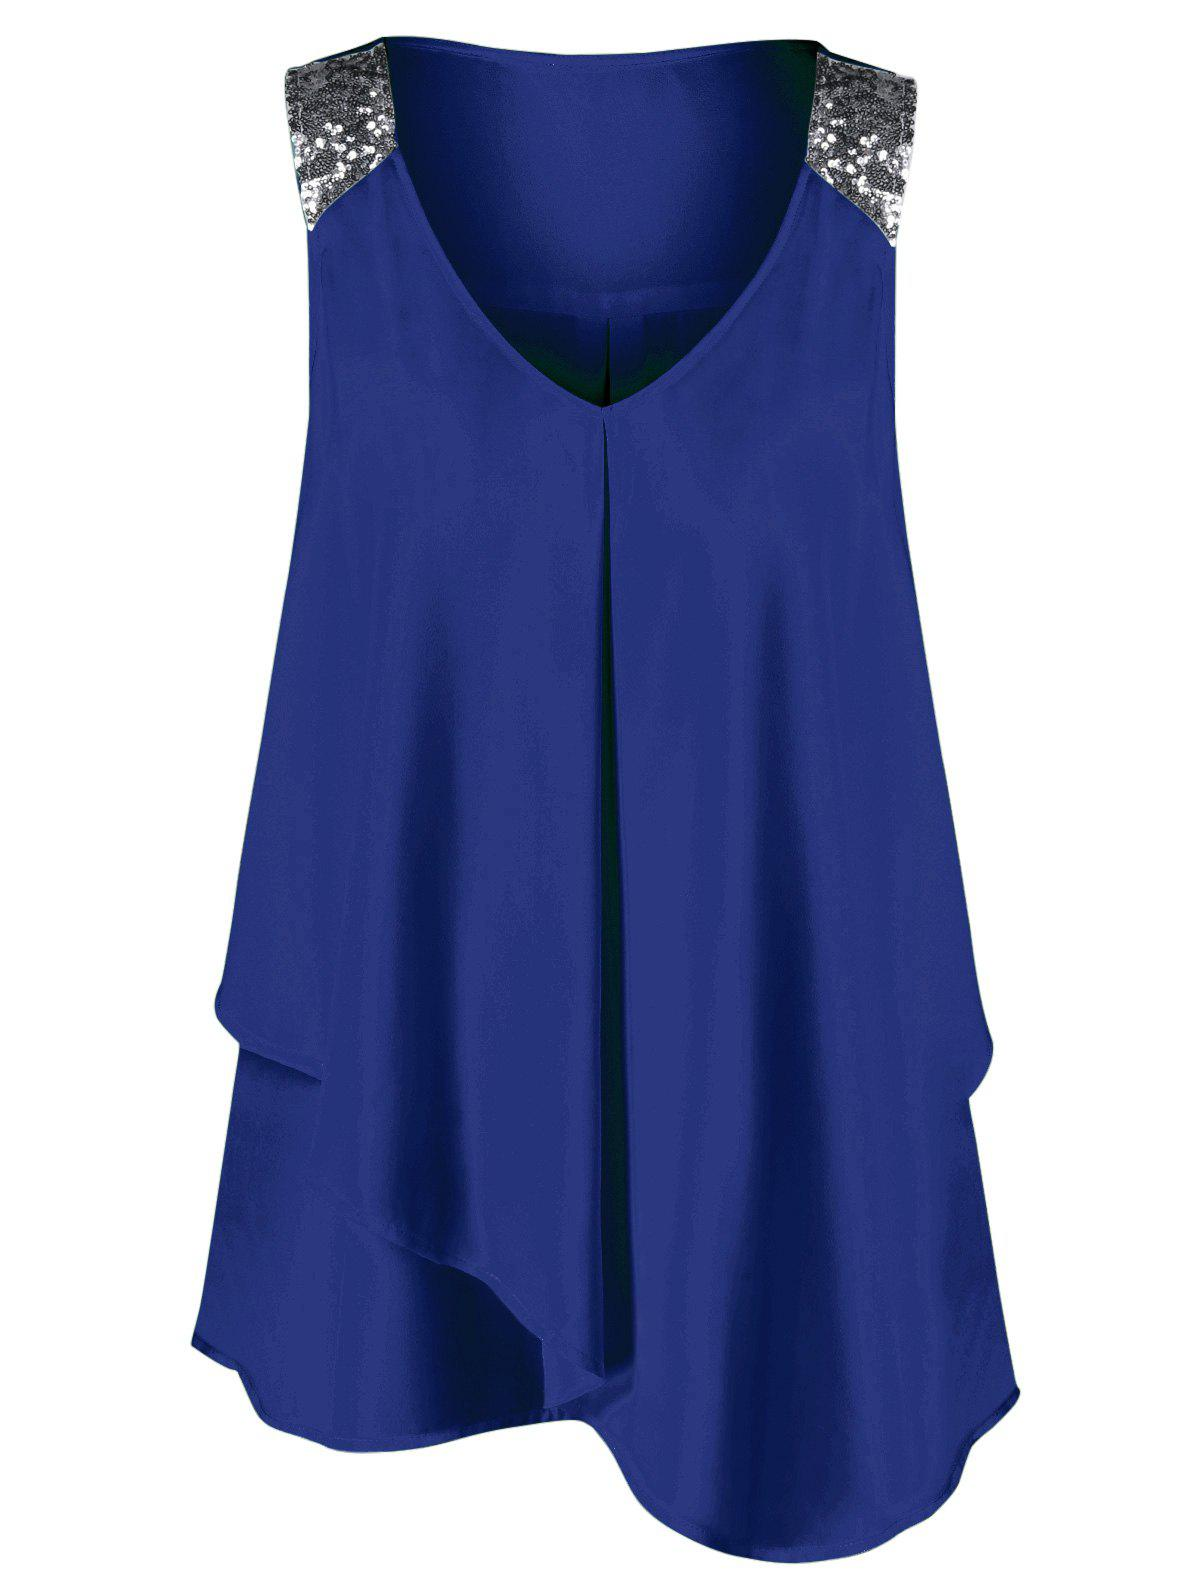 Plus Size Sequined Sleeveless Shoulder Overlap BlouseWOMEN<br><br>Size: 5XL; Color: ROYAL; Material: Polyester; Shirt Length: Long; Sleeve Length: Sleeveless; Collar: V-Neck; Style: Fashion; Season: Summer; Pattern Type: Others; Weight: 0.2200kg; Package Contents: 1 x Blouse;